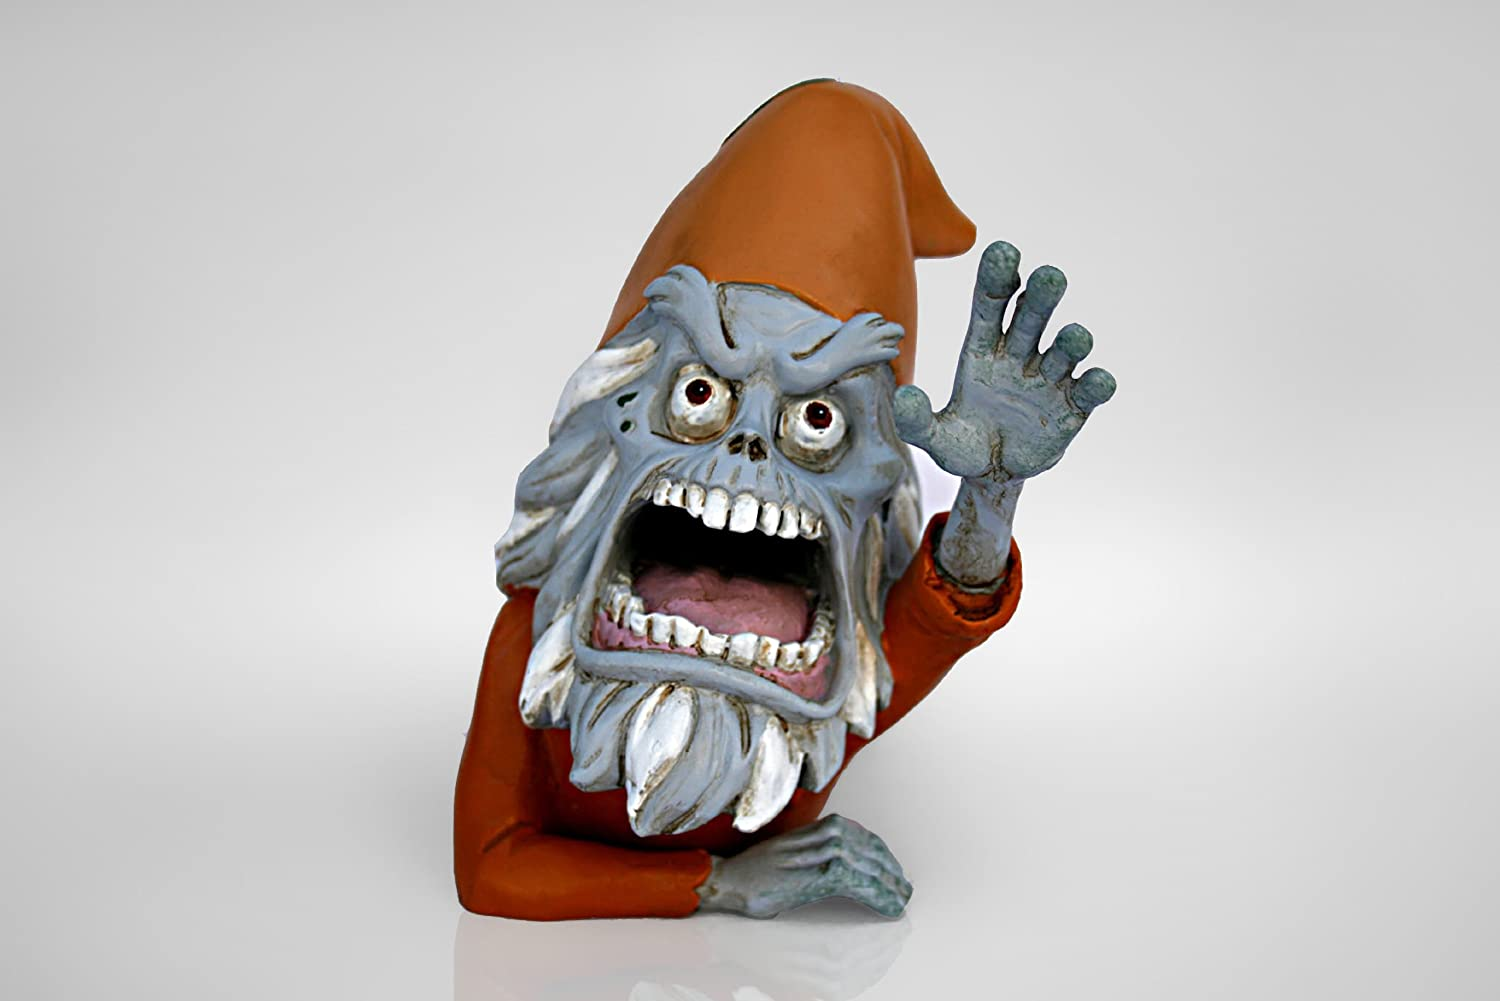 Gnombies Garden: The Geeky Gift Guide: Attack Of The Undead Zombie Gnomes